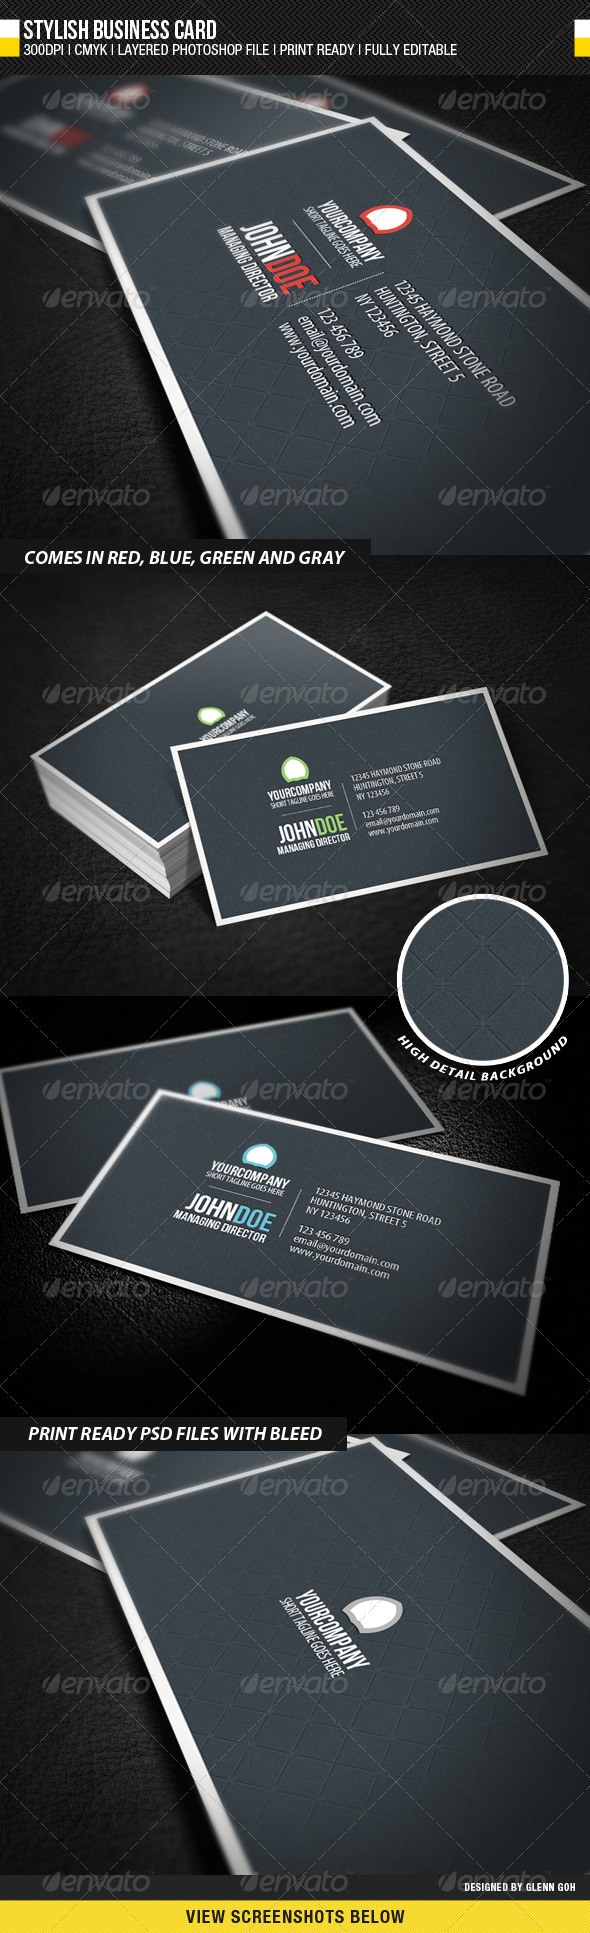 GraphicRiver Stylish Business Card 878390